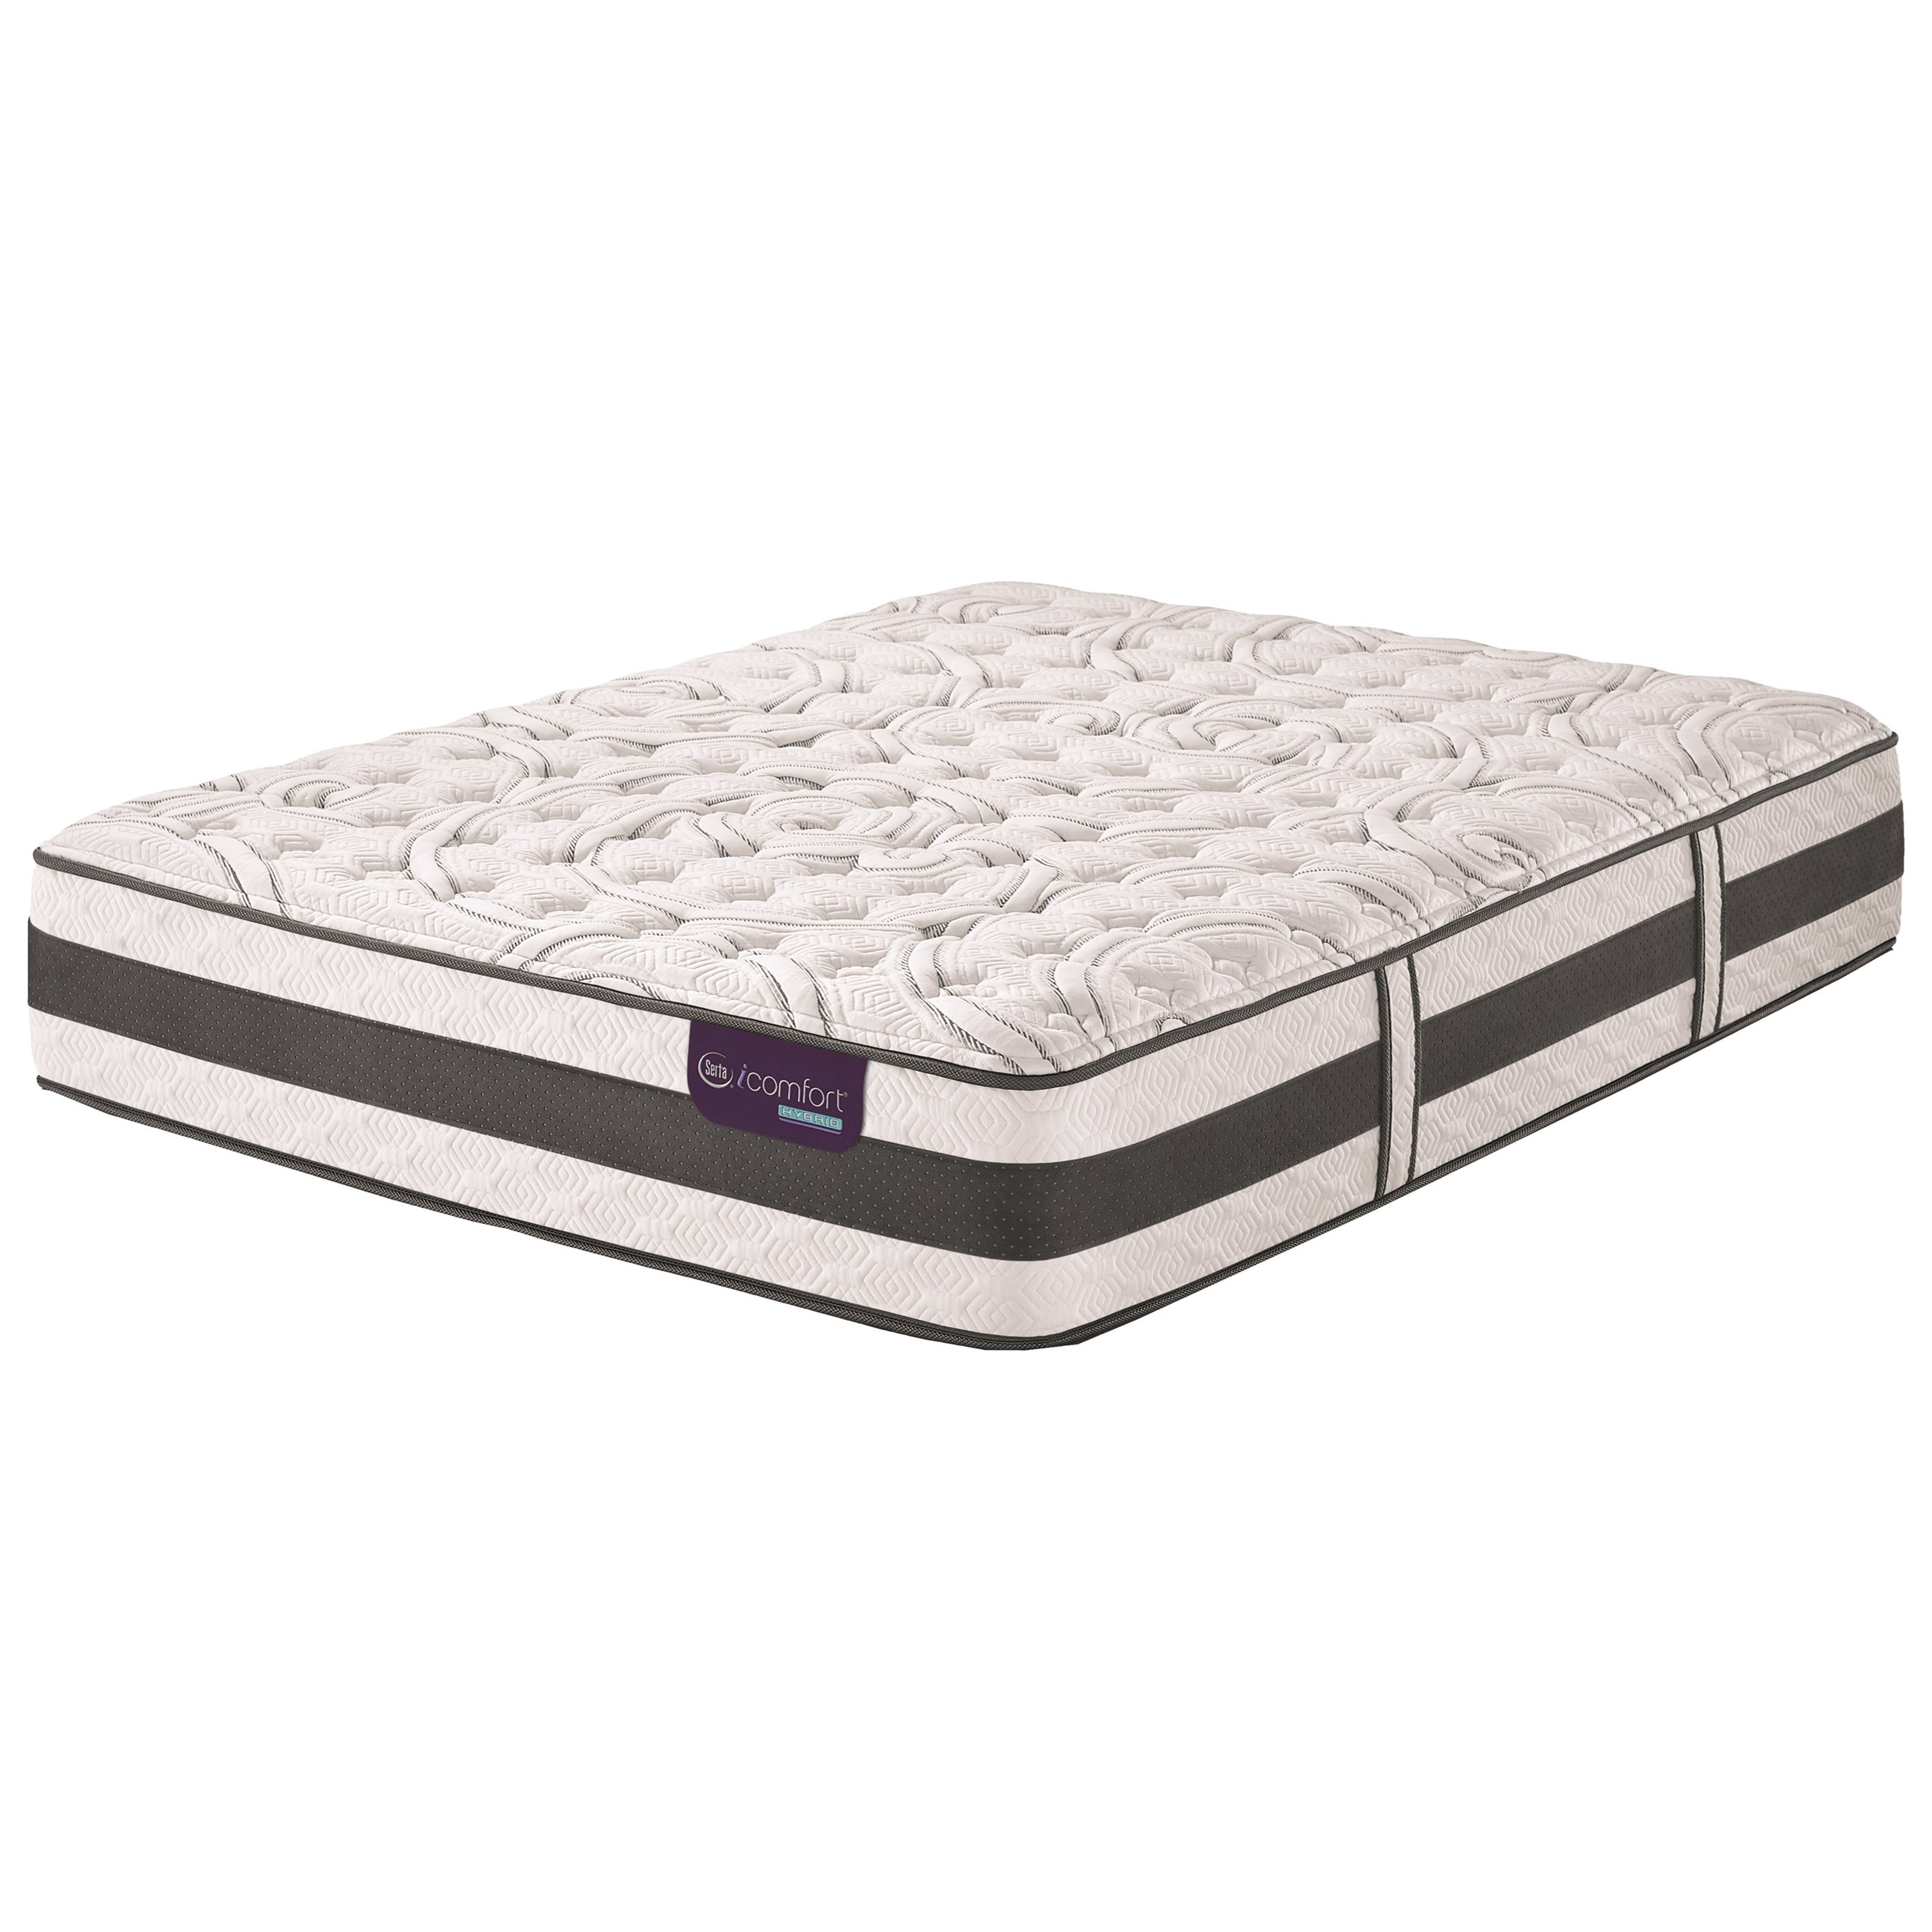 Serta iComfort Hybrid Recognition Twin XL Extra Firm Hybrid Quilted Mattress - Item Number: RecgntnExtFirm-TXL